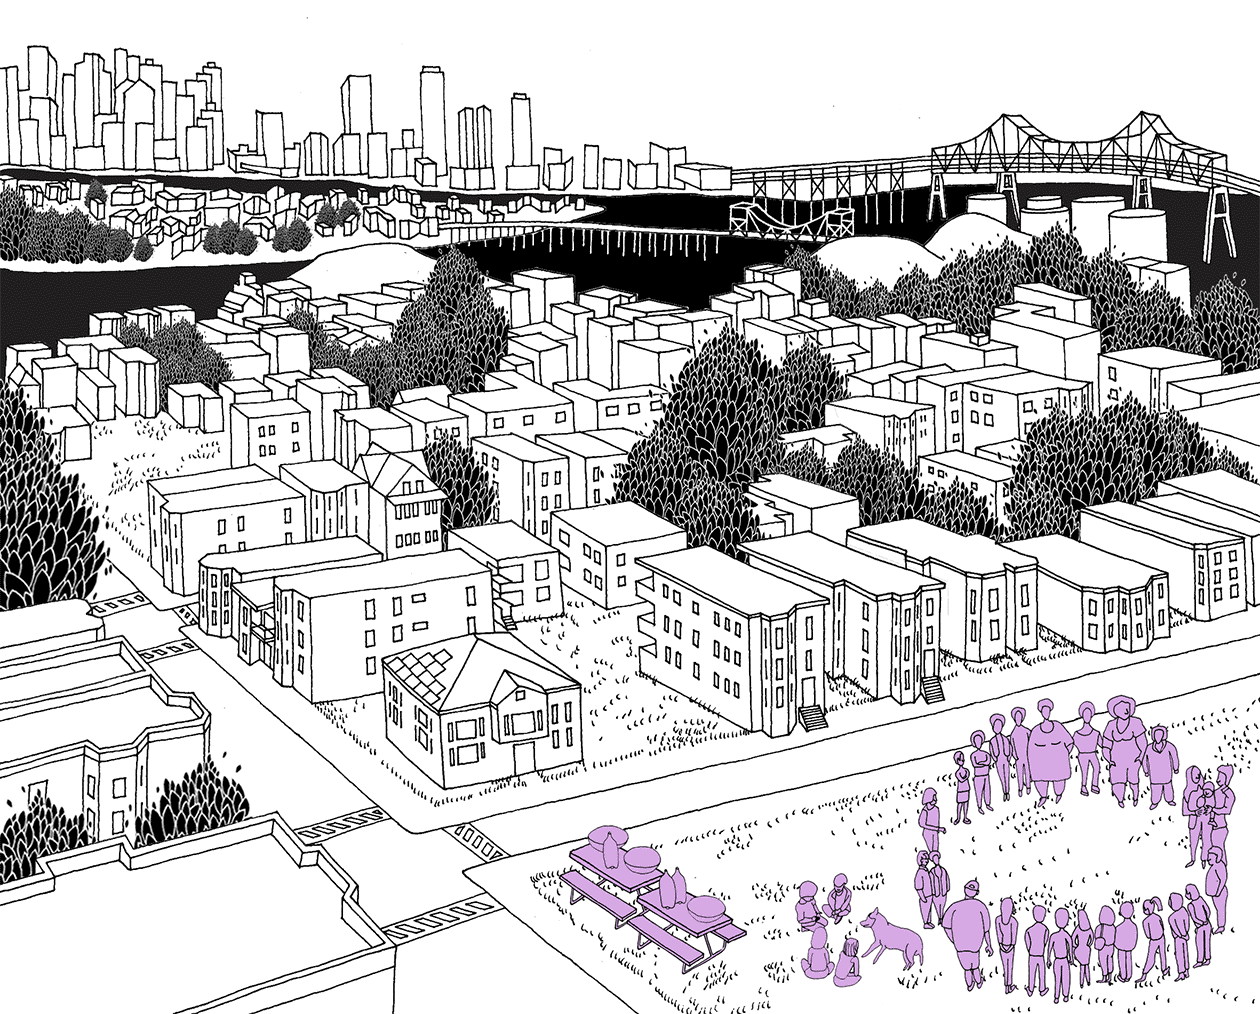 Line drawing showing a the landscape in East Boston, with the Chelsea river and downtown Boston in the background. In the foreground, a circle of people stand in a city park, near picnic tables with food.